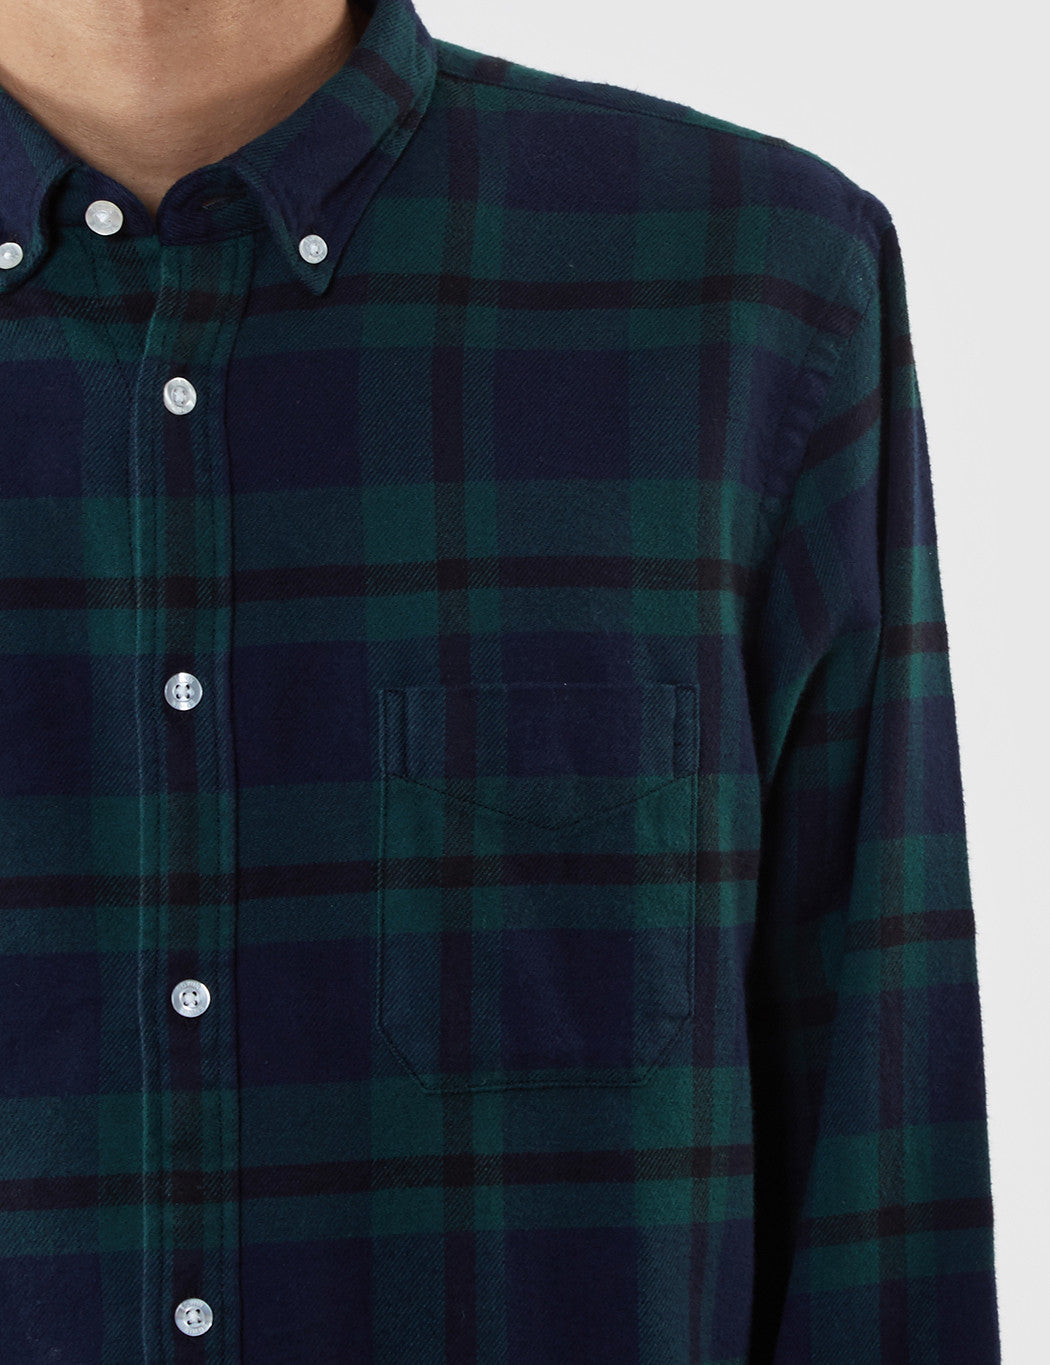 Edwin Standard Flannel Shirt - Black Watch Tartan